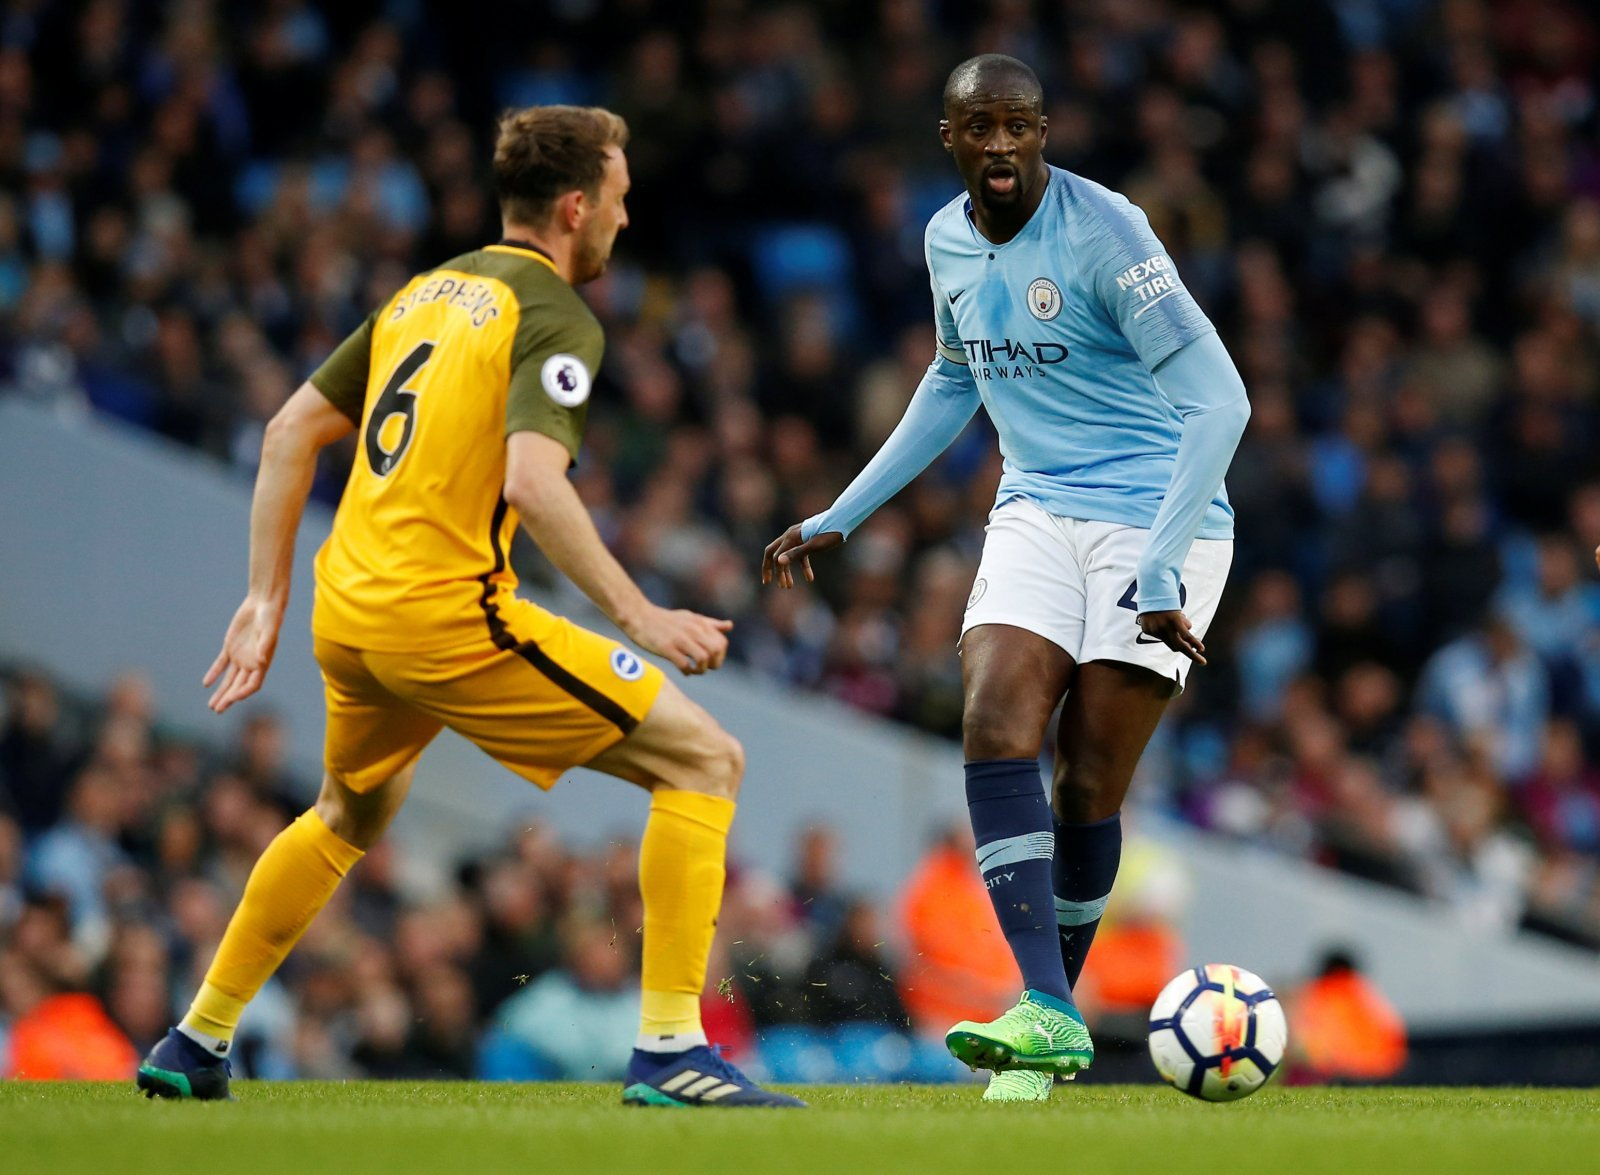 Opinion: Celtic deal for Yaya Toure would top Rangers' Defoe deal